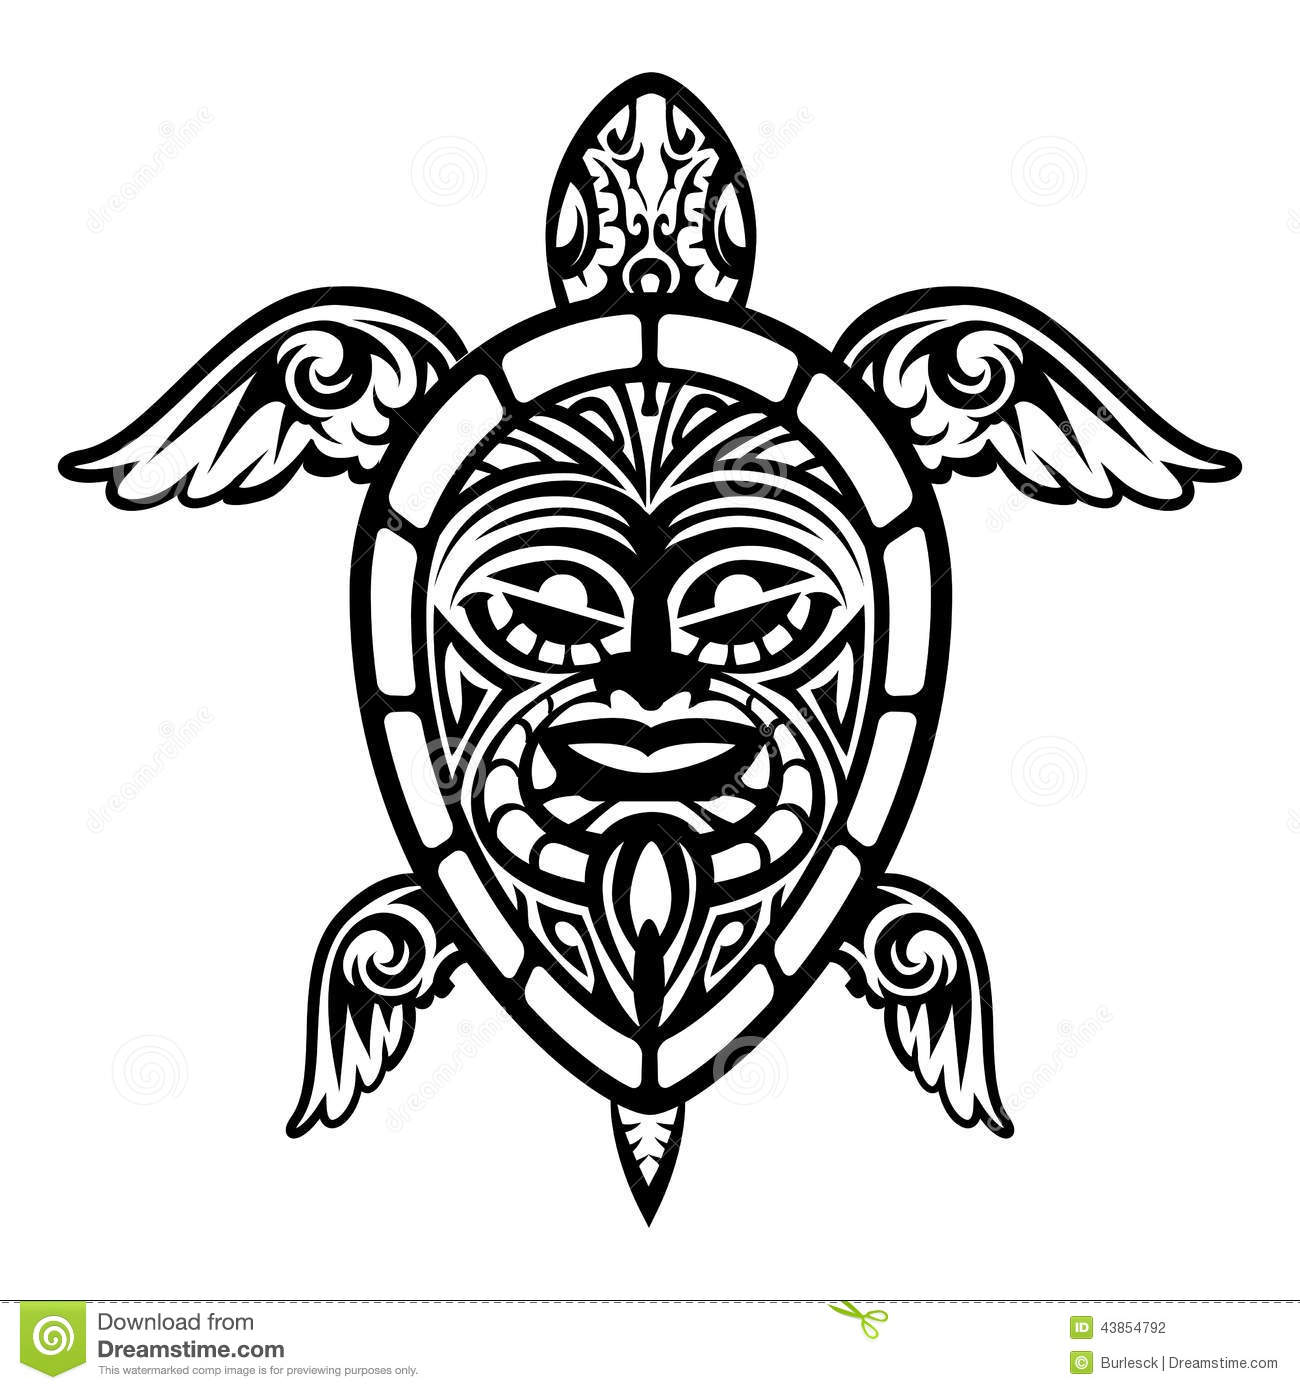 Hawaiian turtle designs color - photo#23